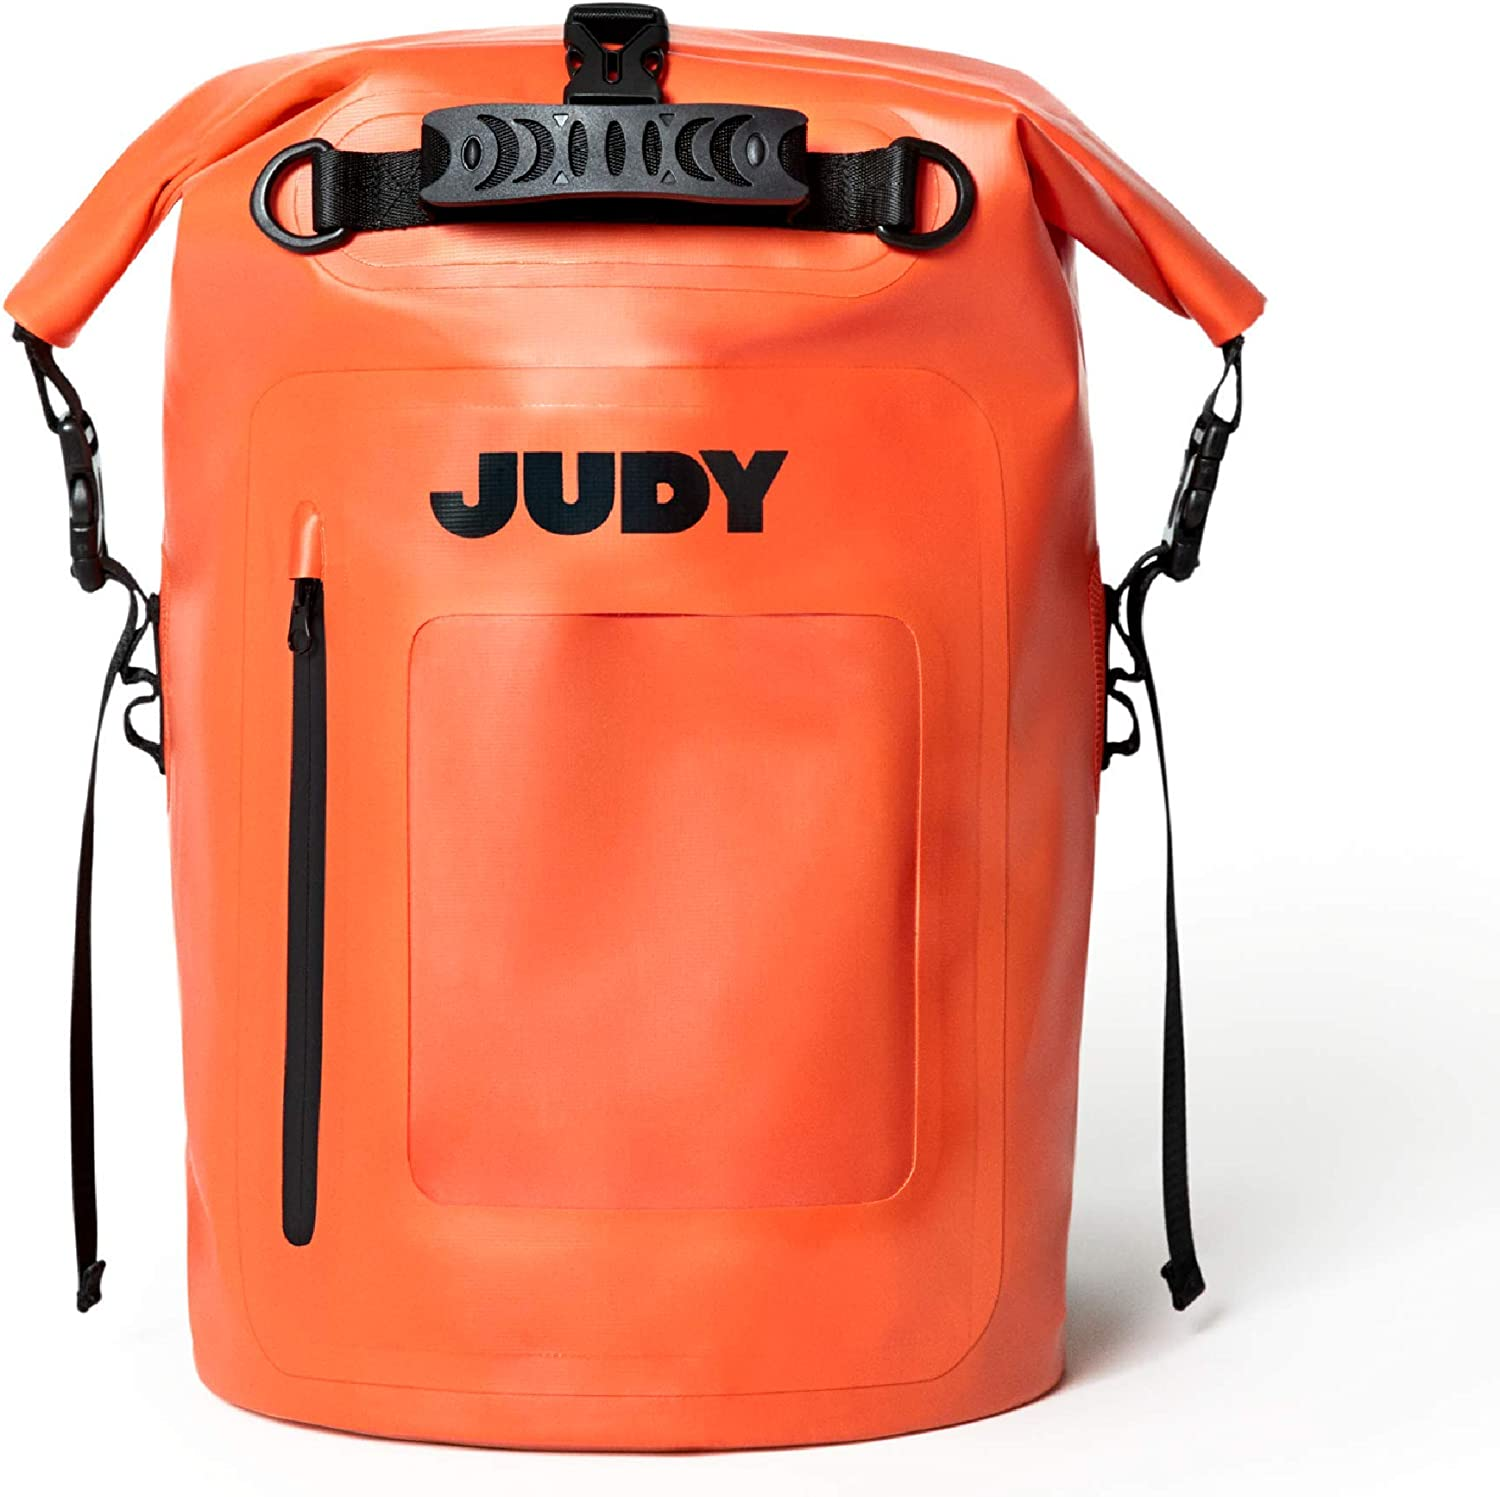 JUDY Emergency Preparedness Kit in Backpack - Emergency Preparedness Go-Bag with Tools for Safety & Warmth, First Aid, and Food & Water - The Mover Max, Full Size